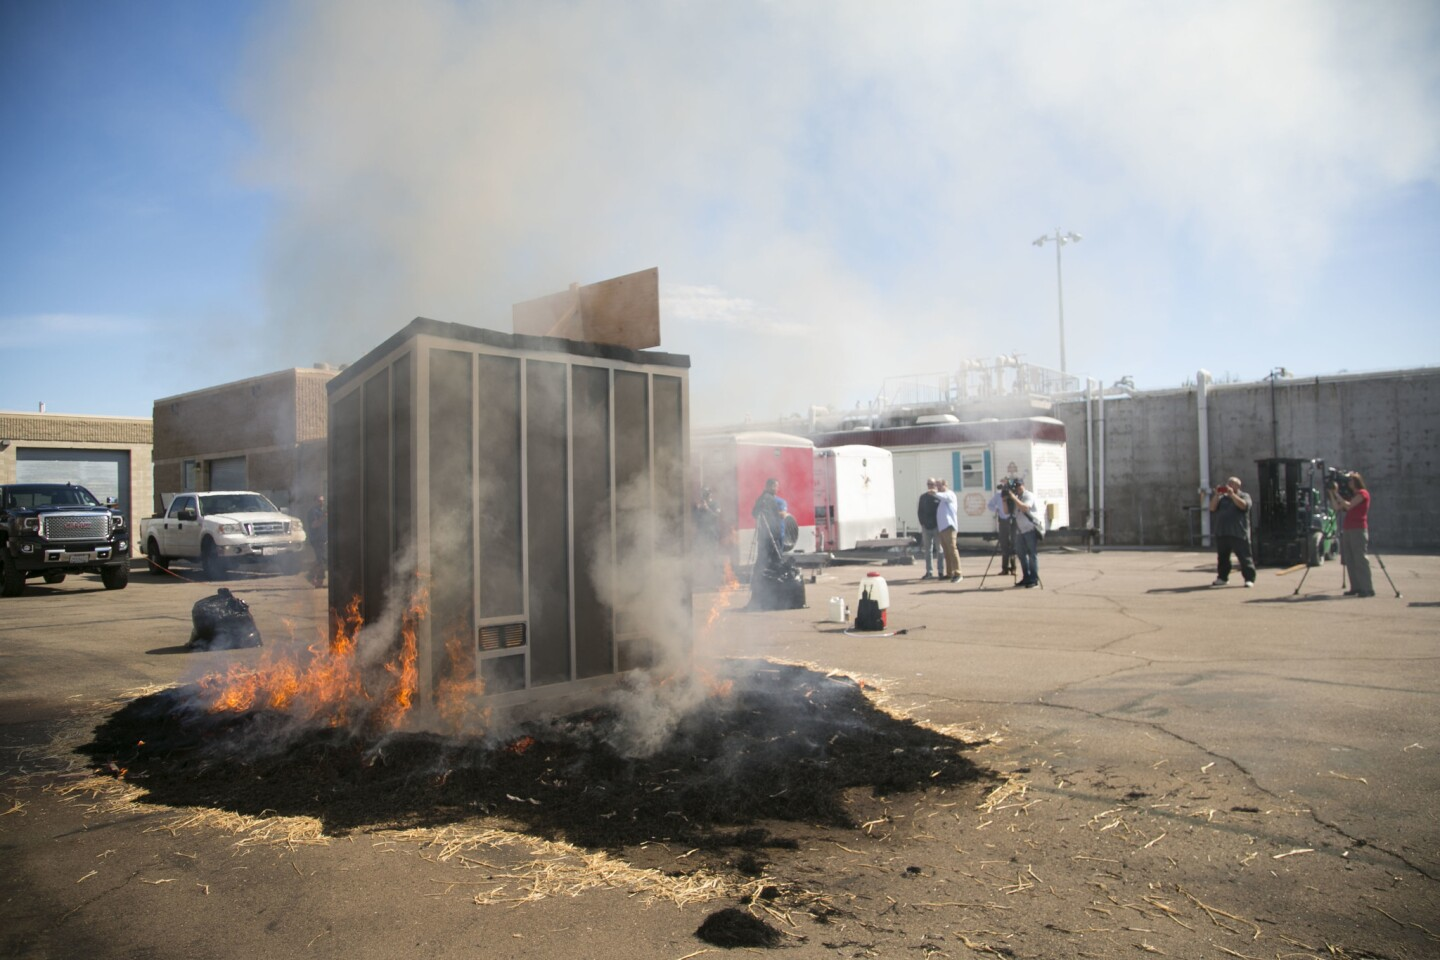 M-Fire Suppression Inc. is a company manufacturing a shed that is fire proof for protecting valuables from wildfire. They did a demonstration on Tuesday at the San Diego Fire Academy.